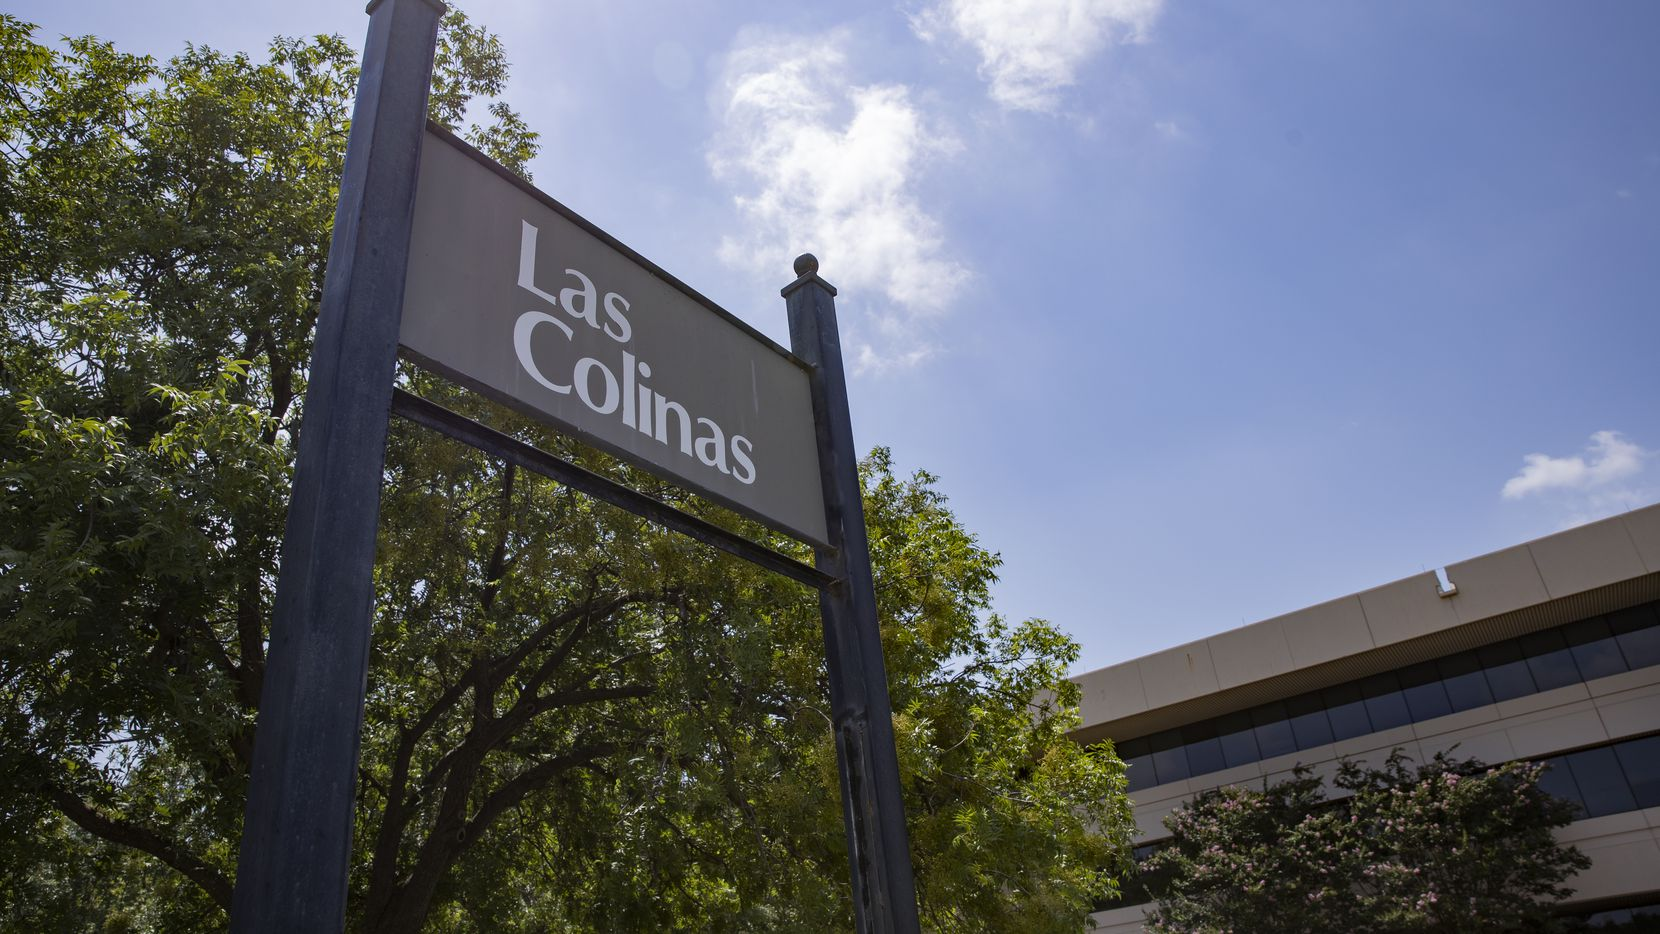 The exterior of the Las Colinas at 2901 Kinwest Parkway on July 1, 2020 in Irving. (Juan Figueroa/The Dallas Morning News)